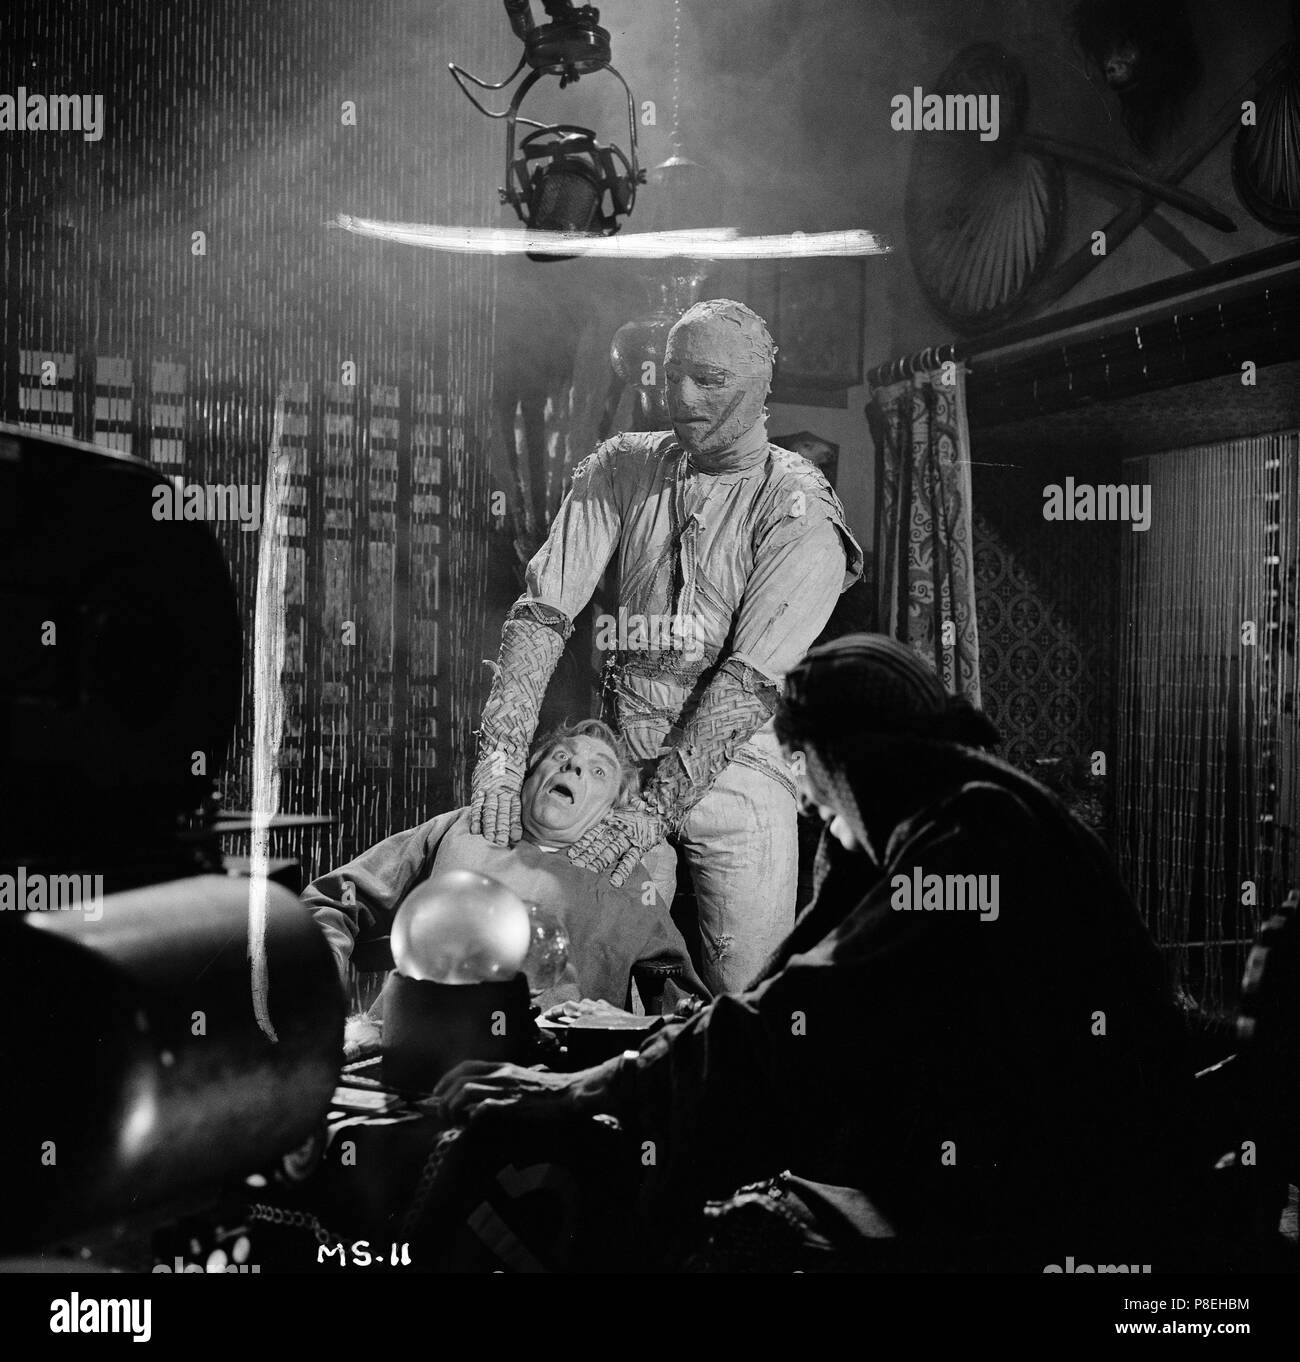 The Mummy's Shroud (1967) Eddie Powell as The Mummy, Andre Morell, Catherine Lacey, Maggie Kimberly,     Date: 1967 Stock Photo